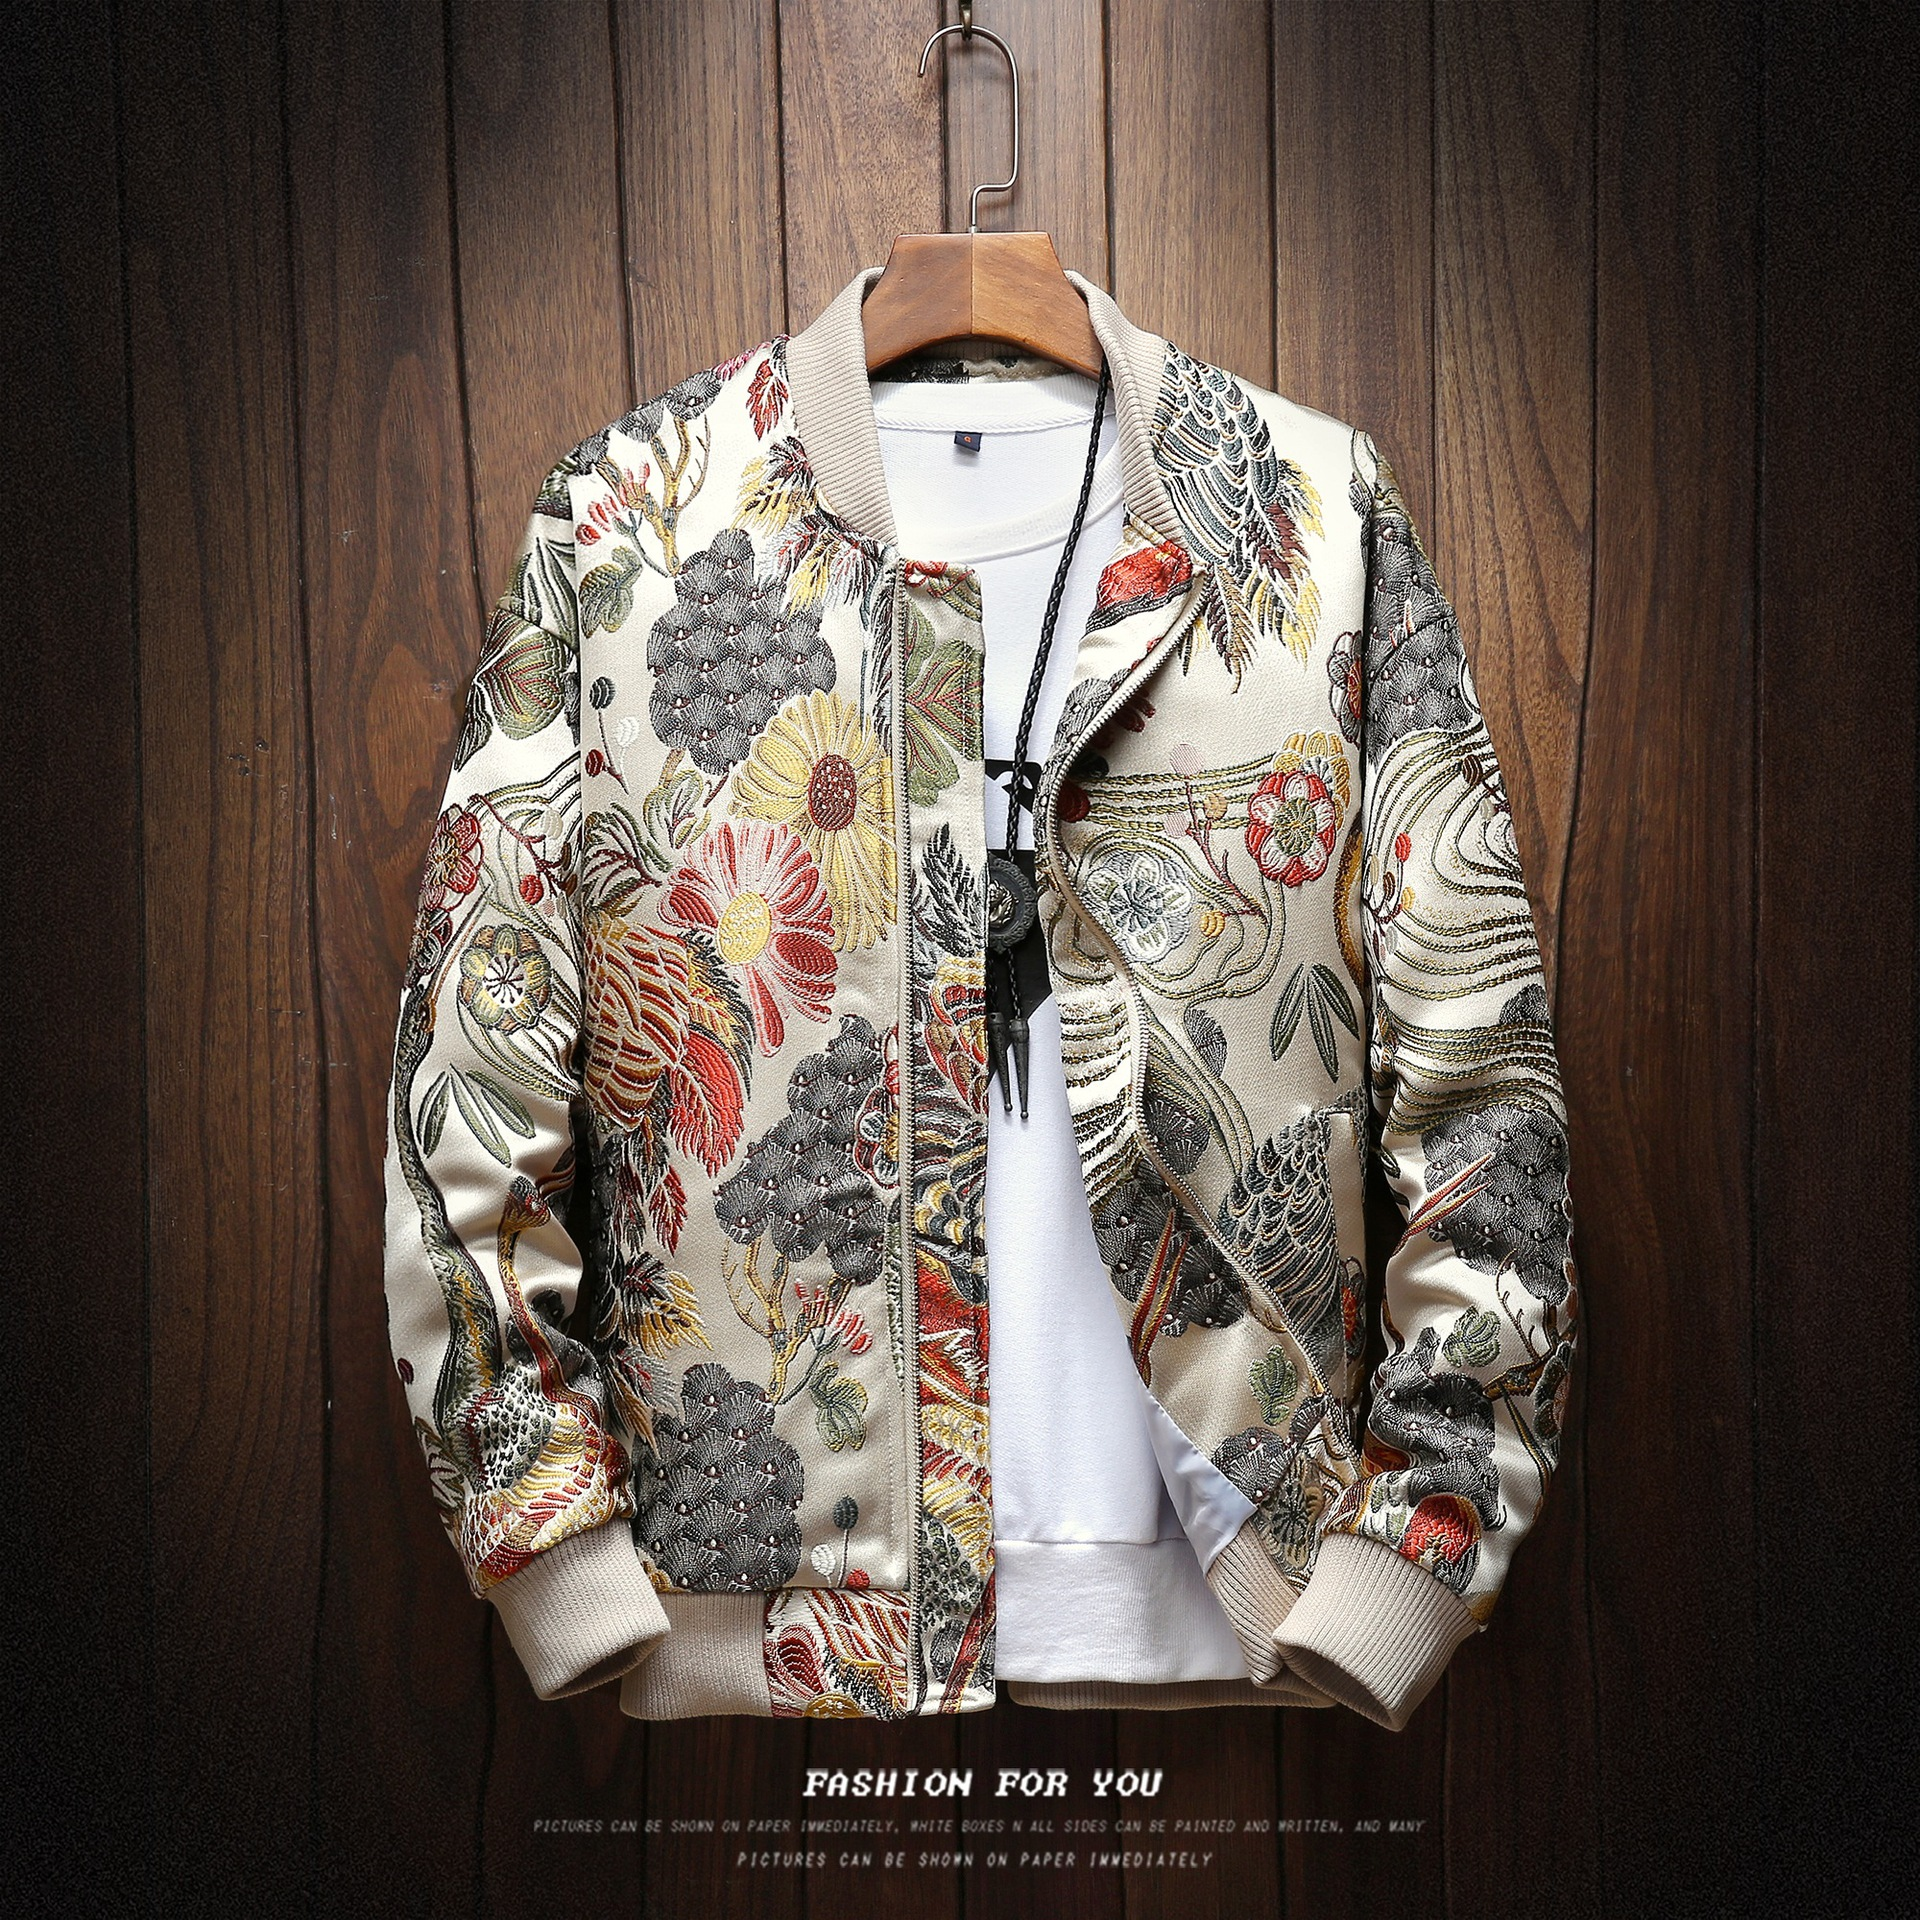 New style baseball collar men's jacket port style full body embroidery plus size casual men's Embroidered Jacket